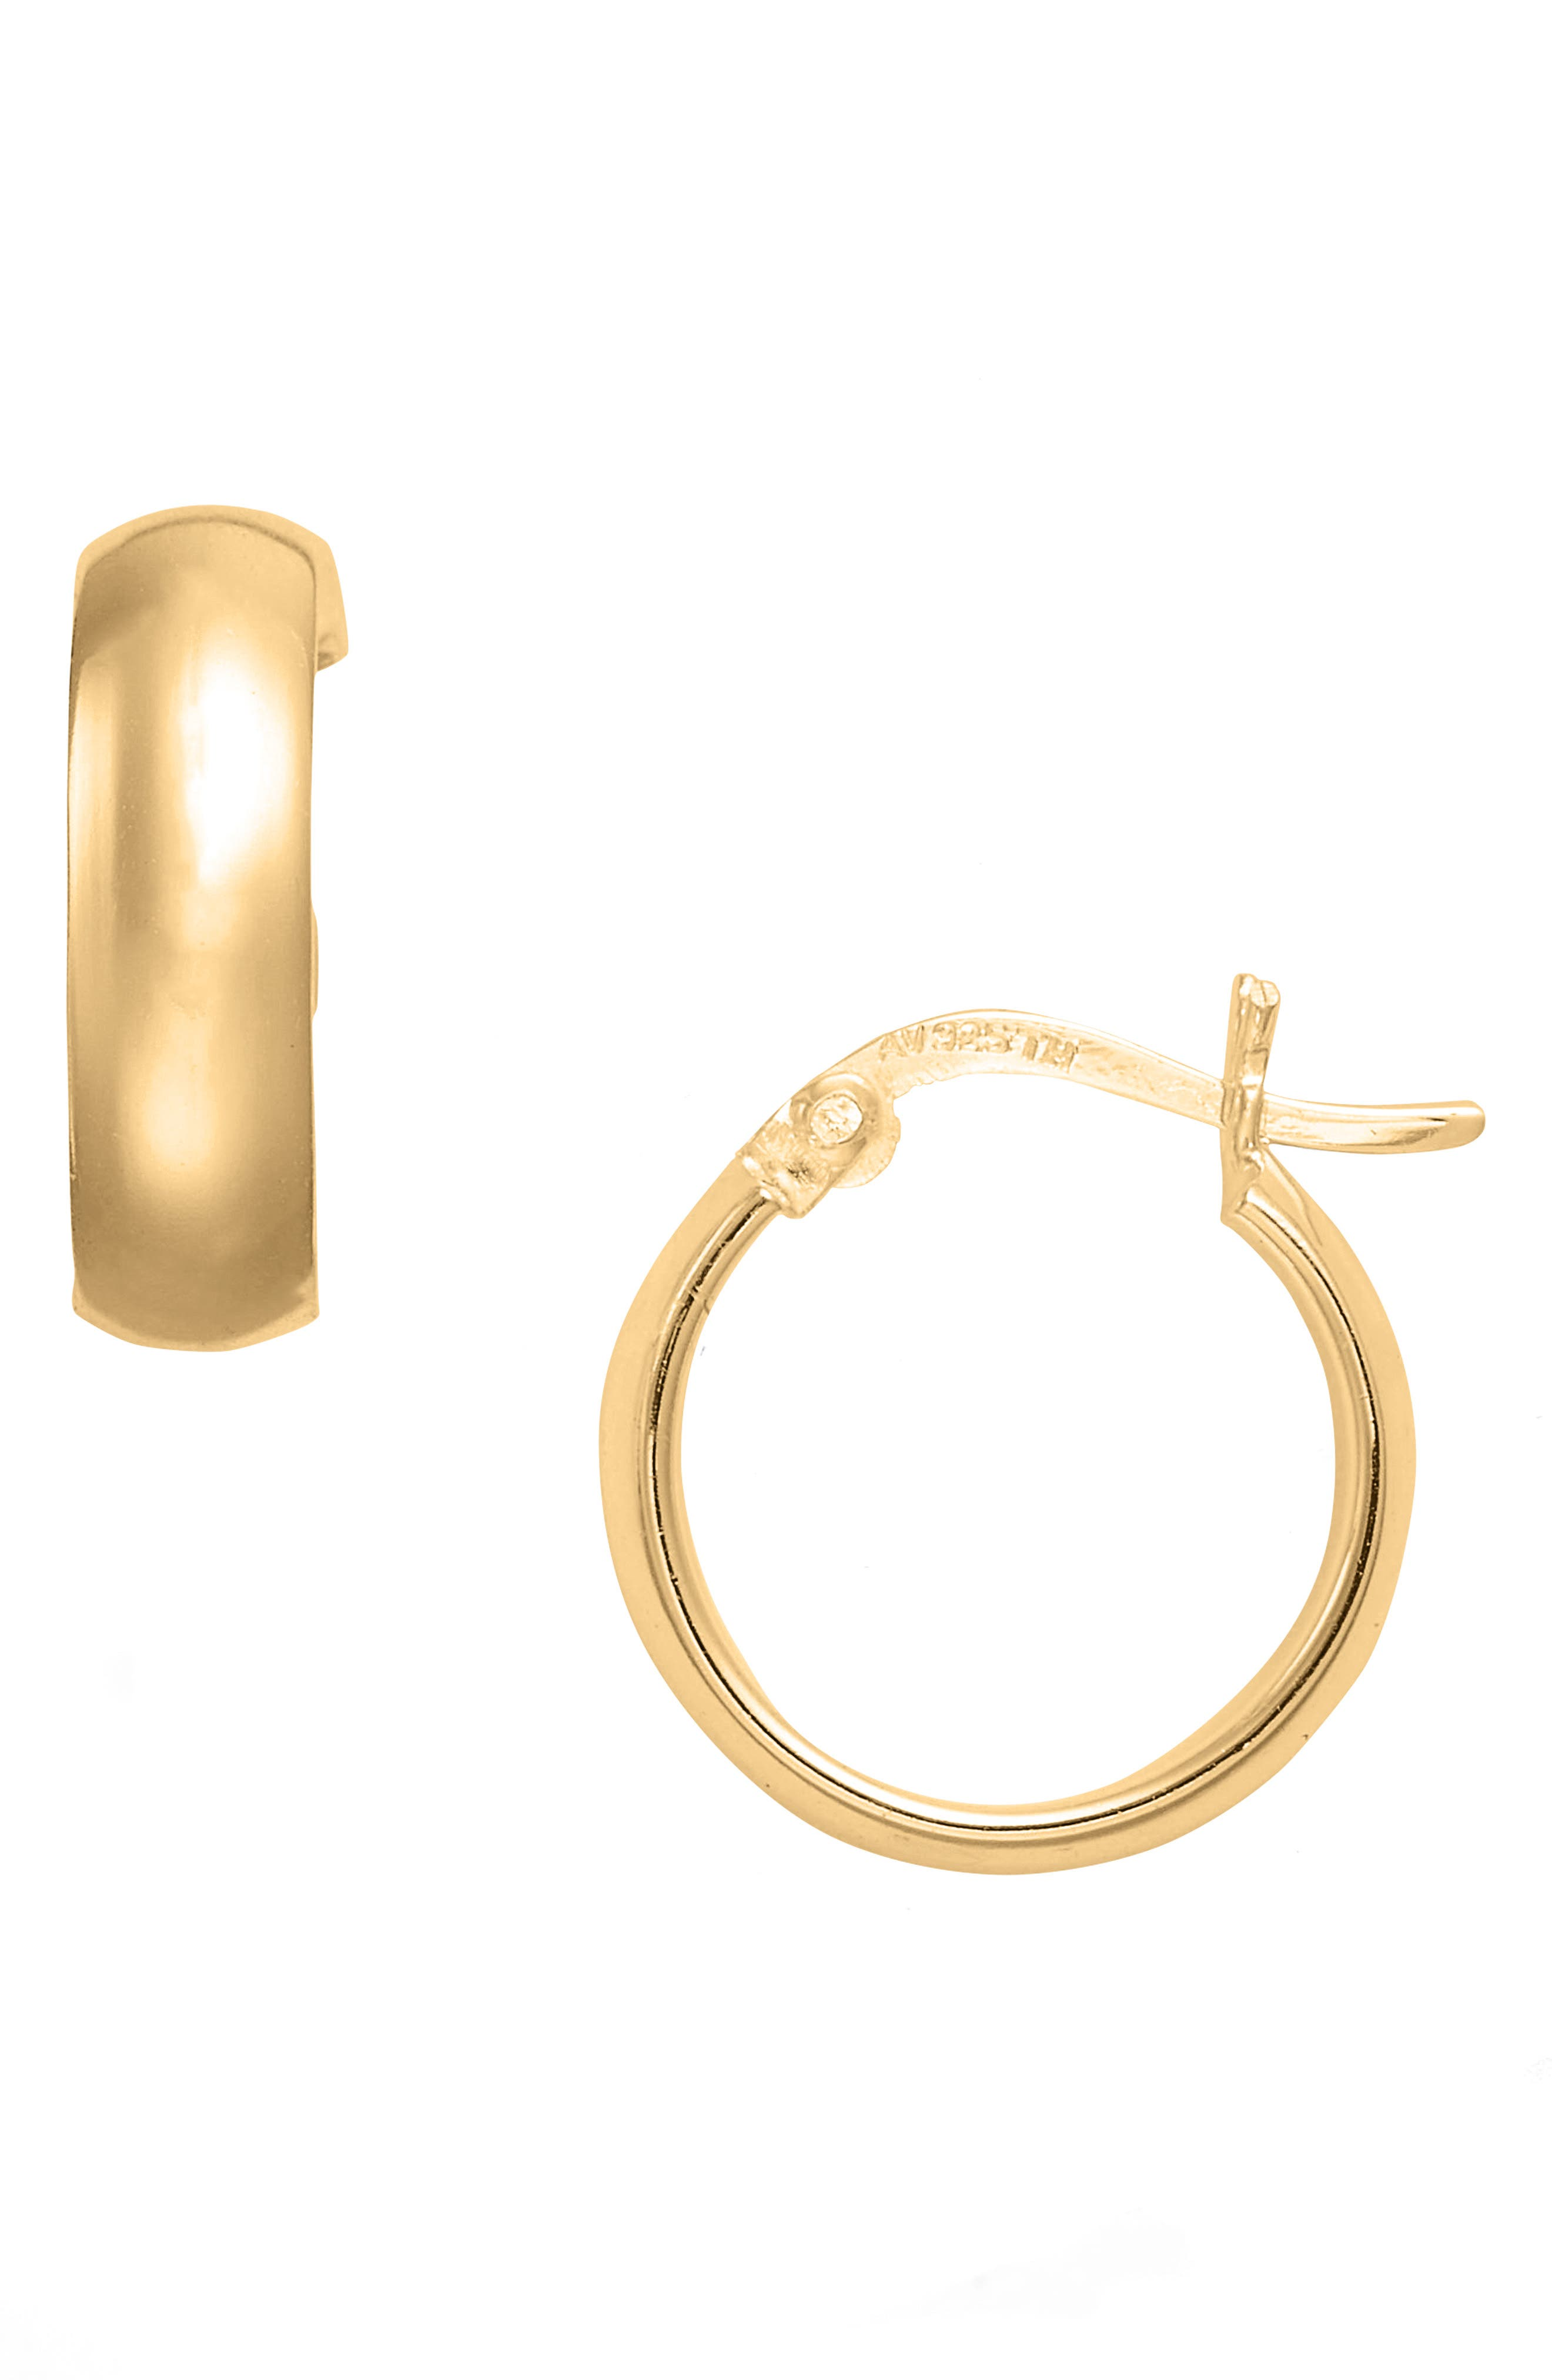 Small Curved Hoop Earrings,                             Main thumbnail 1, color,                             Gold